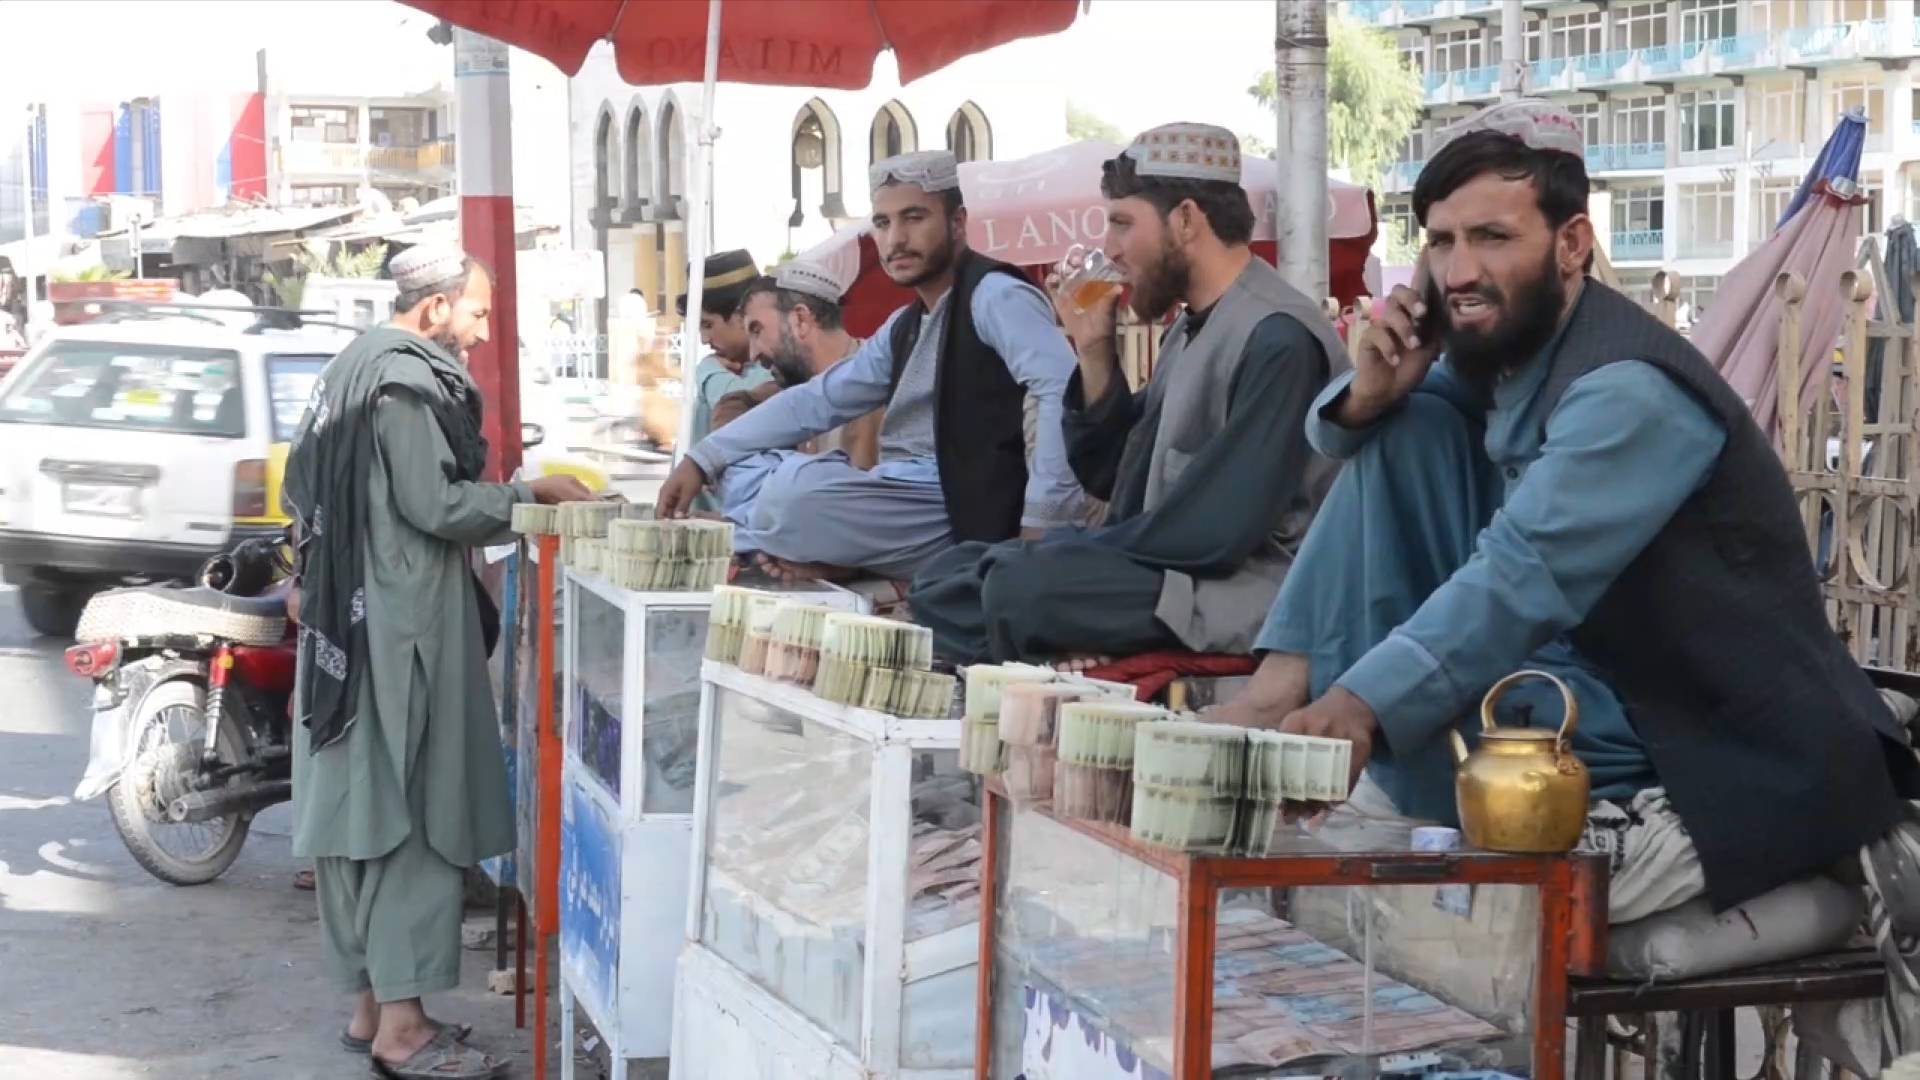 GLOBALink  Afghans' view on the country's future one month on from Taliban takeover